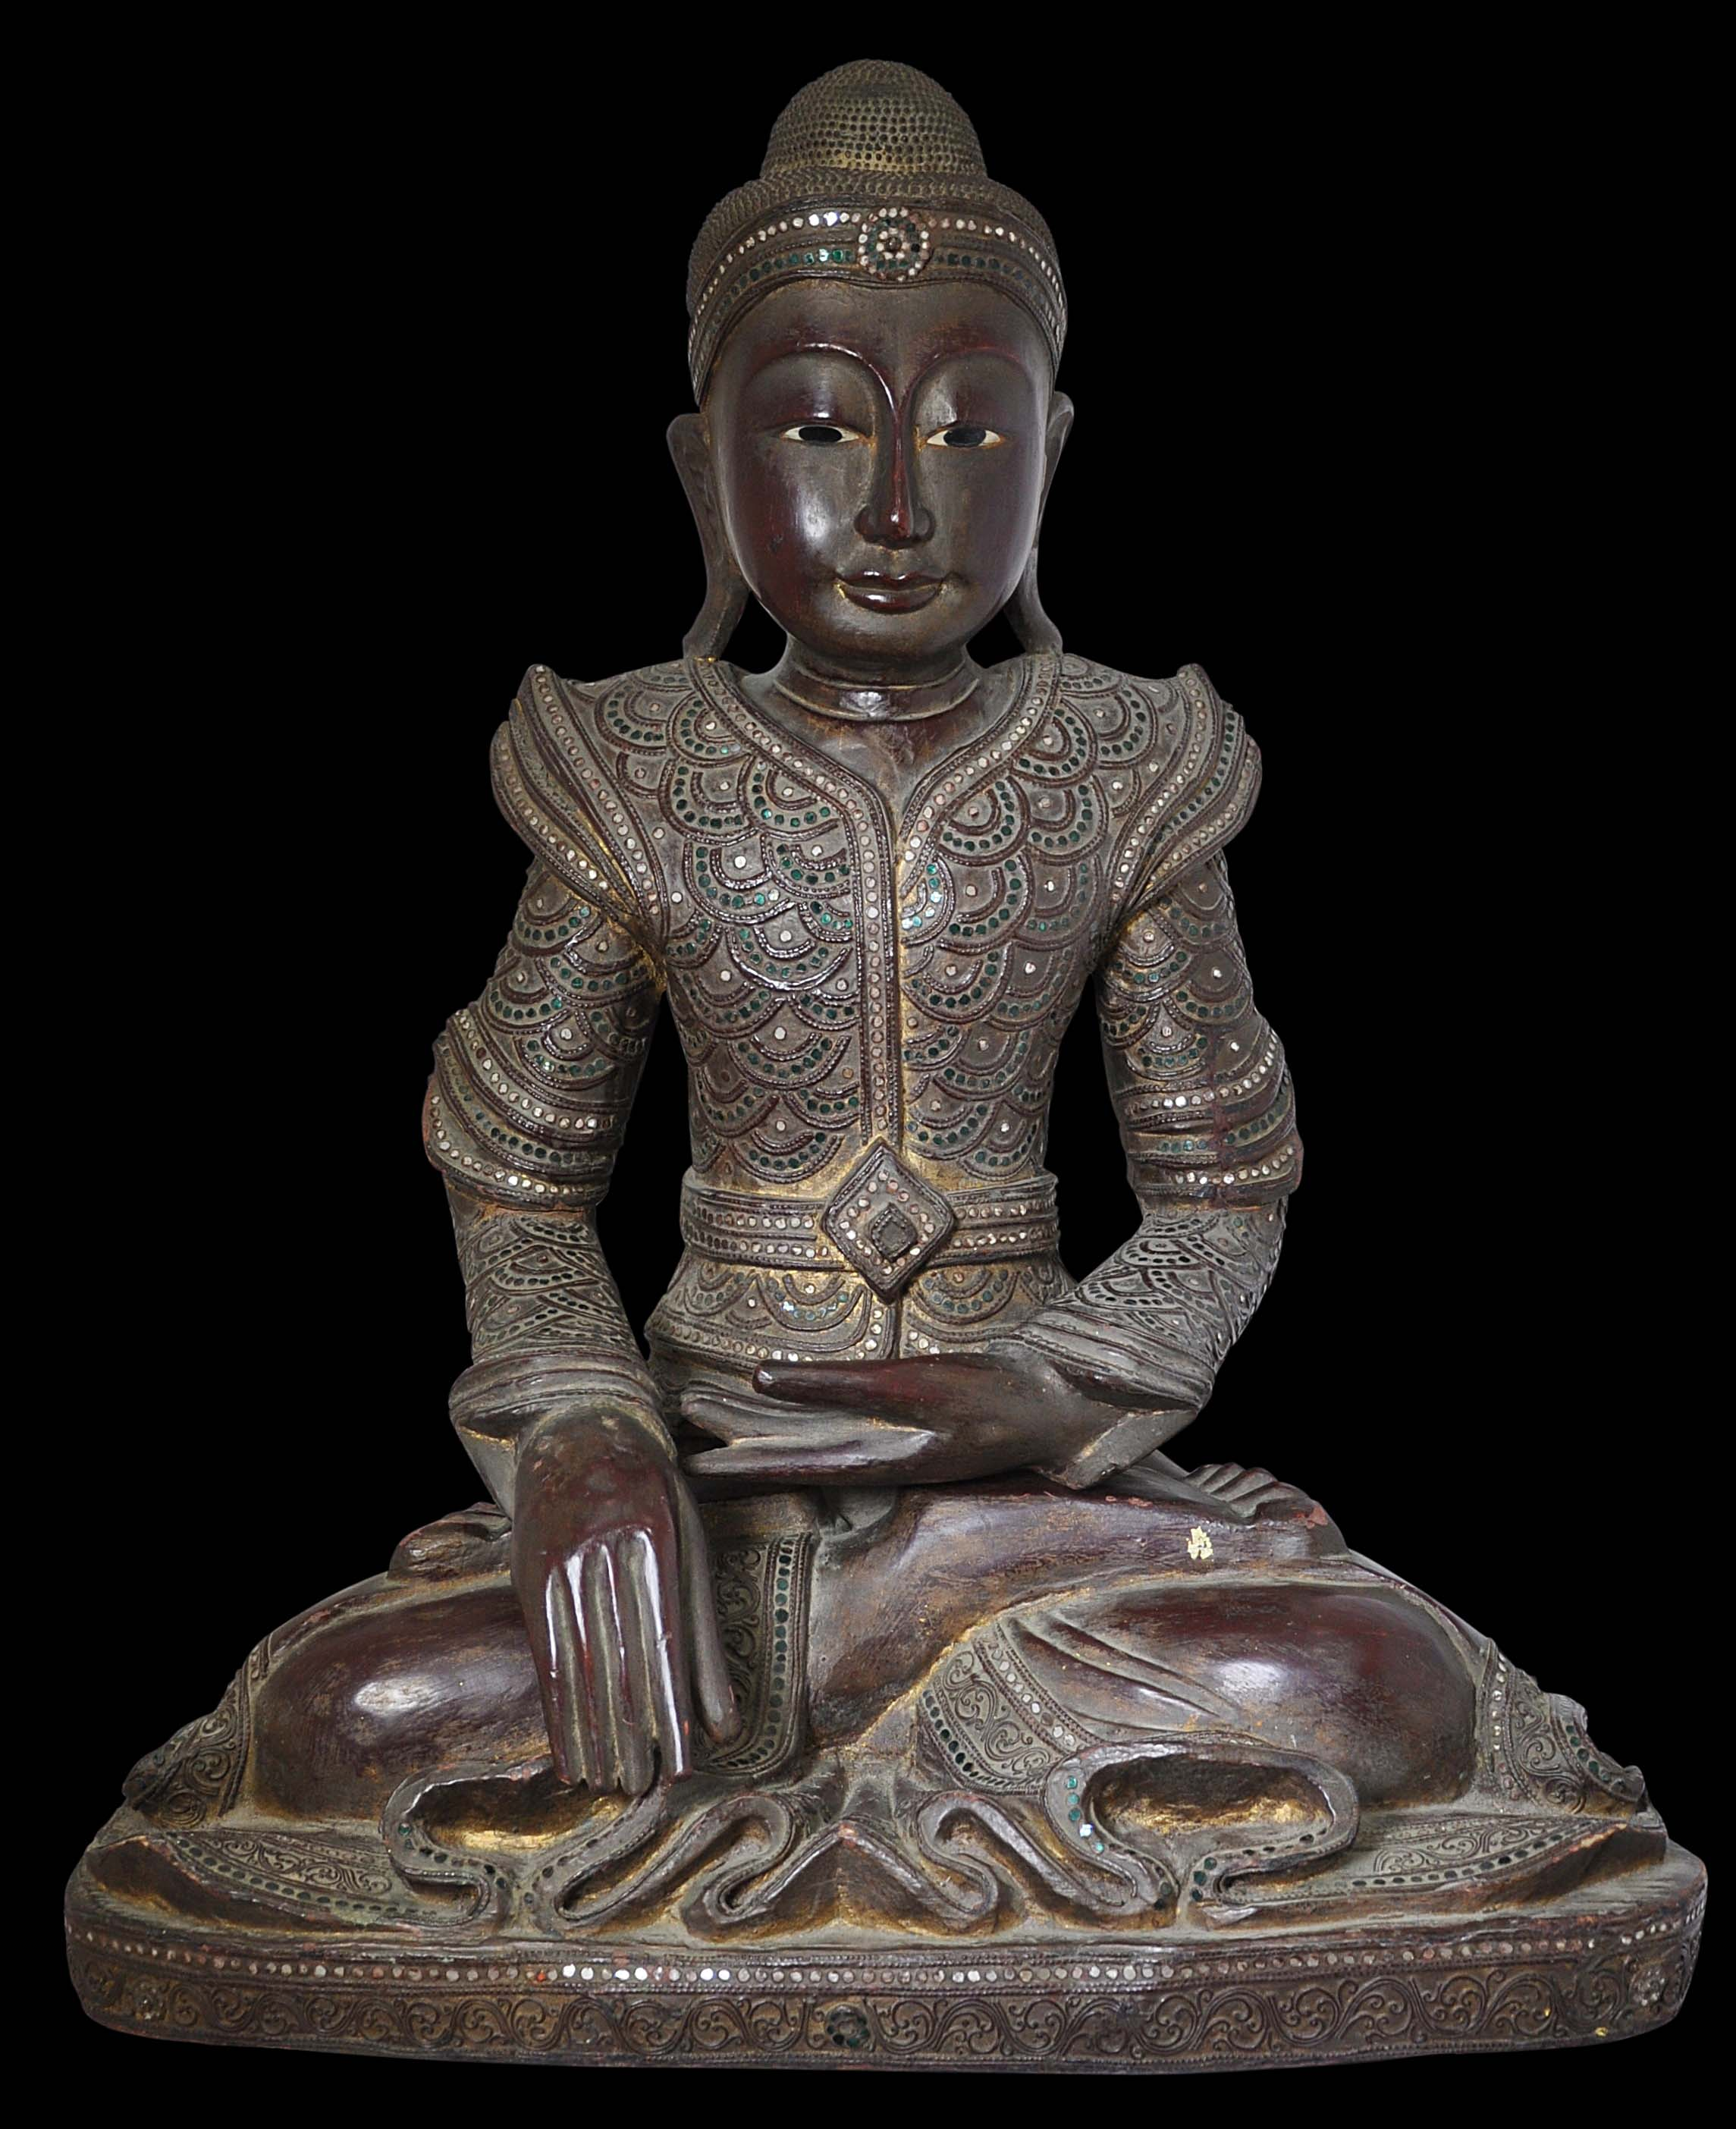 Large, Lacquered Wooden Buddha - Michael Backman Ltd